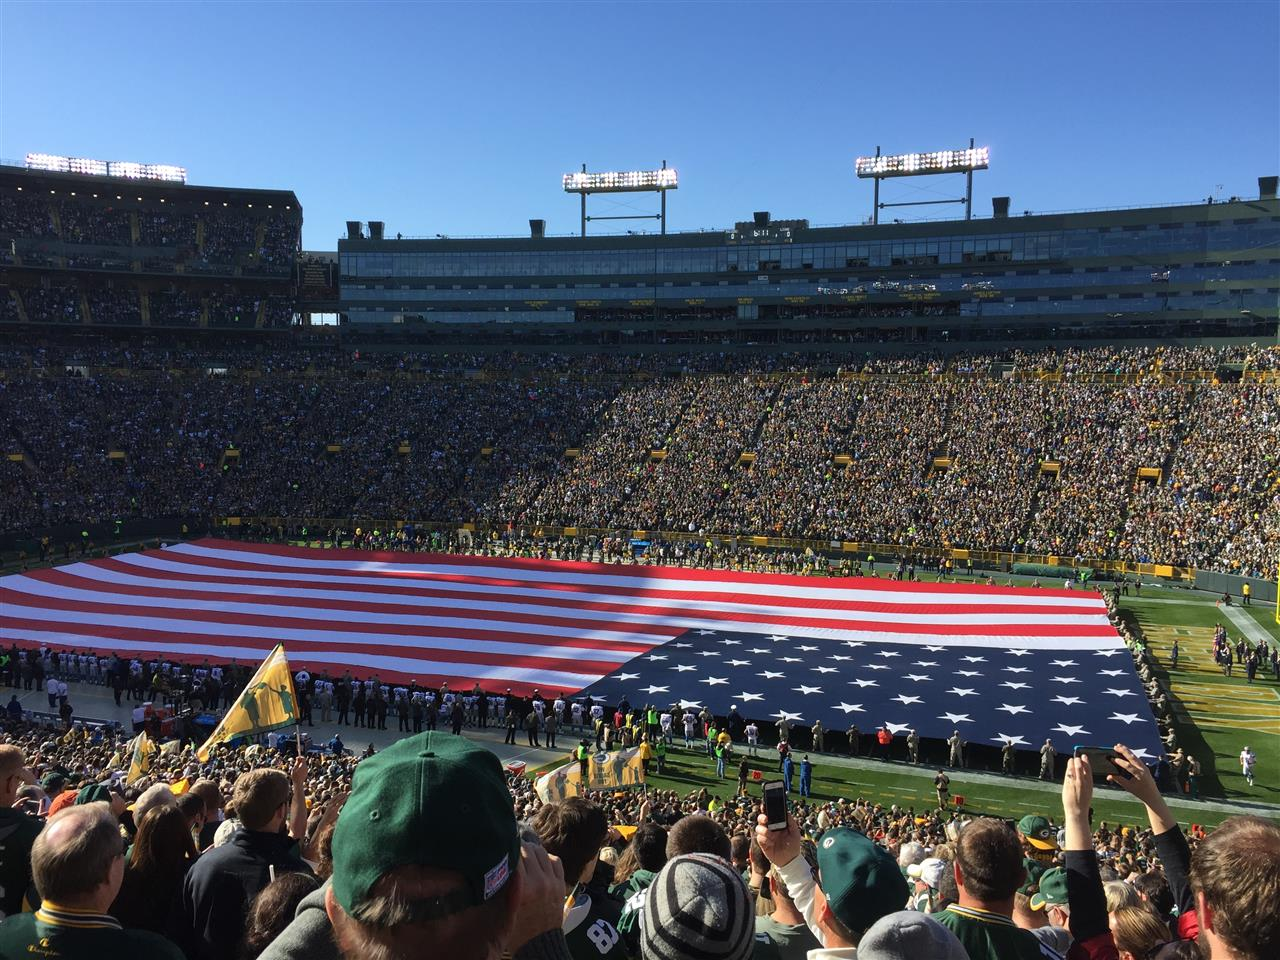 Red, white and blue in Lambeau Field, Green Bay, WI